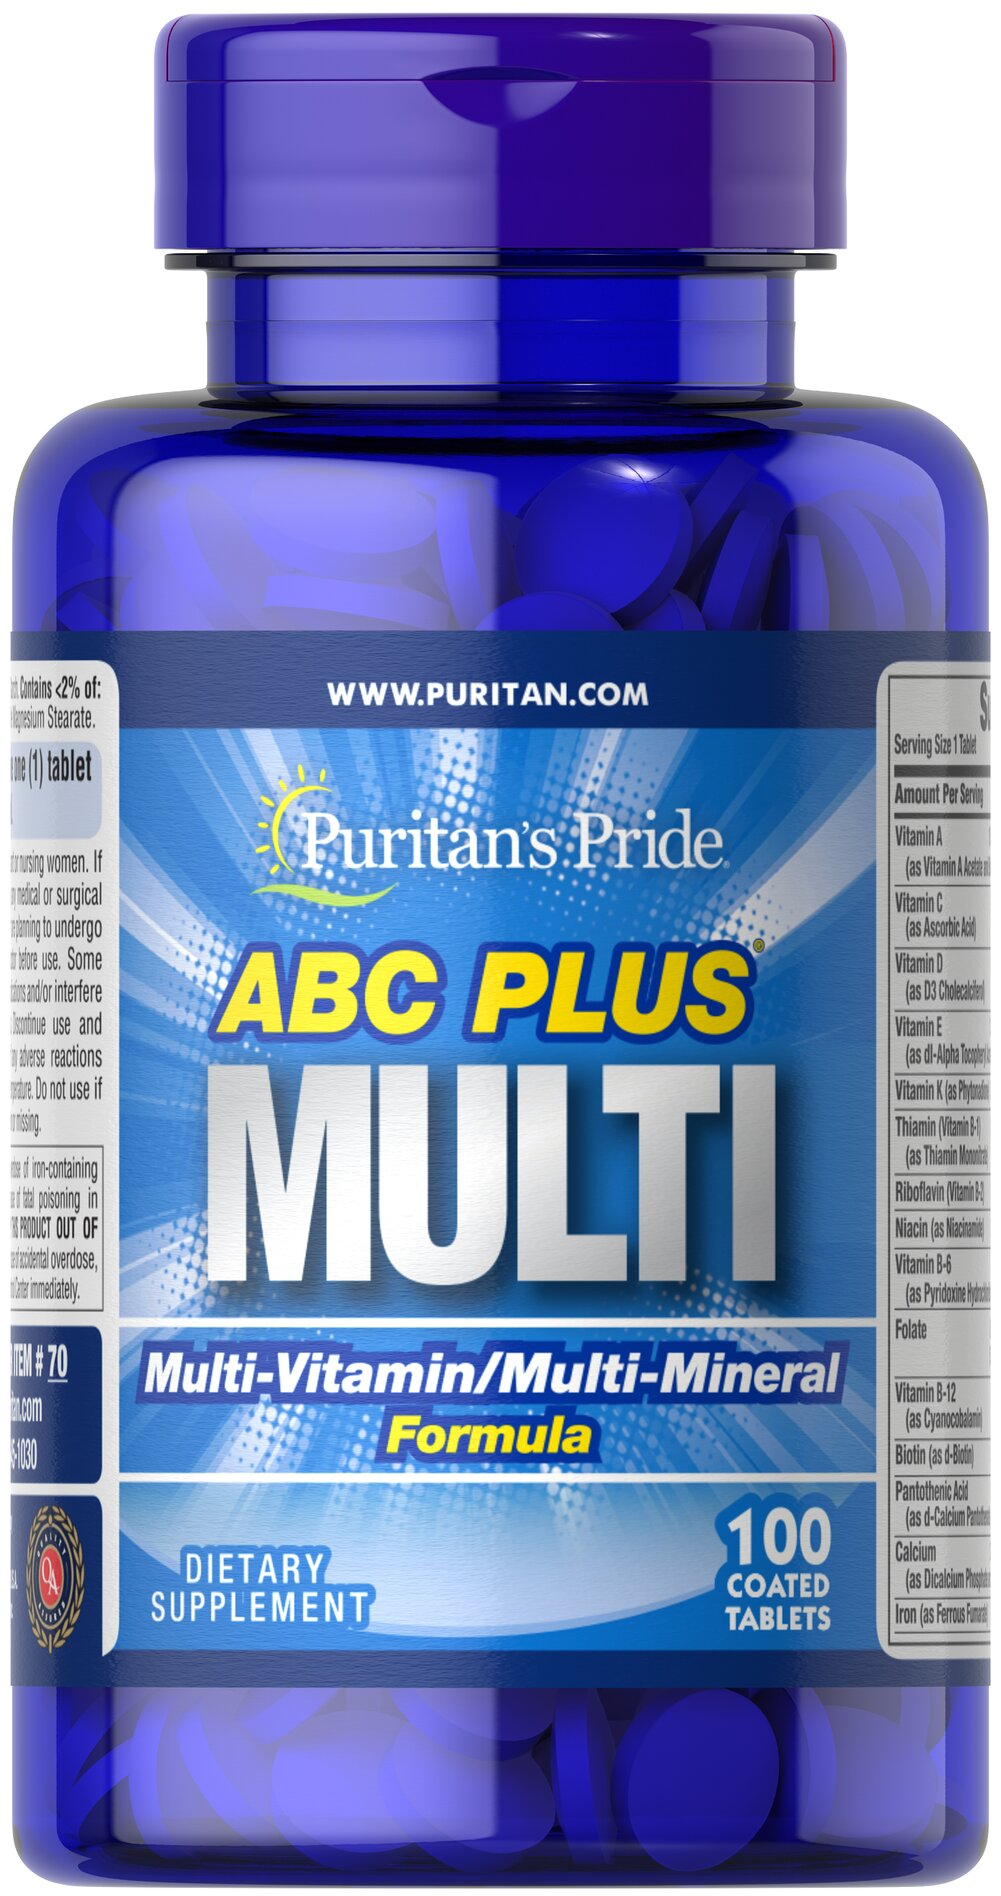 ABC Plus Multivitamin and Multi-Mineral Formula Thumbnail Alternate Bottle View